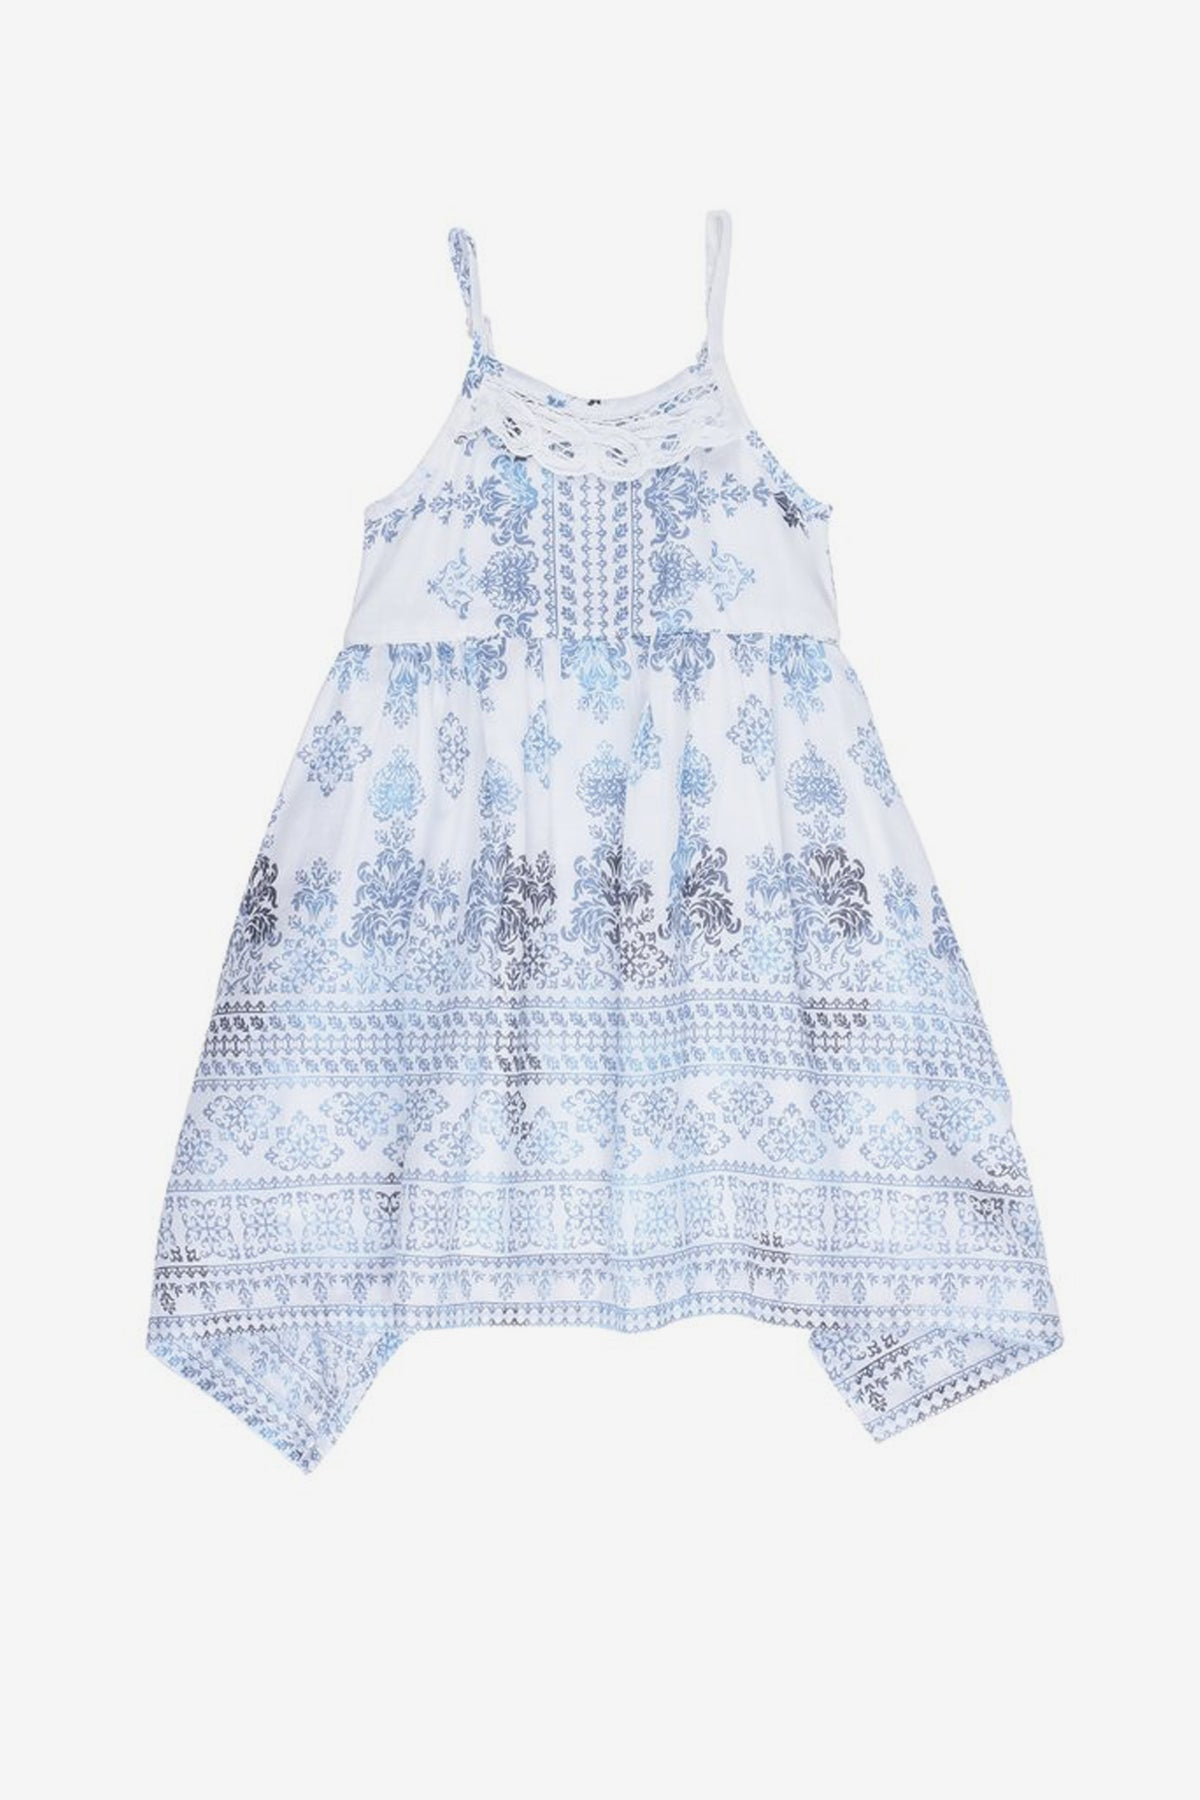 Mimi & Maggie Summer in Paradise Girls Dress